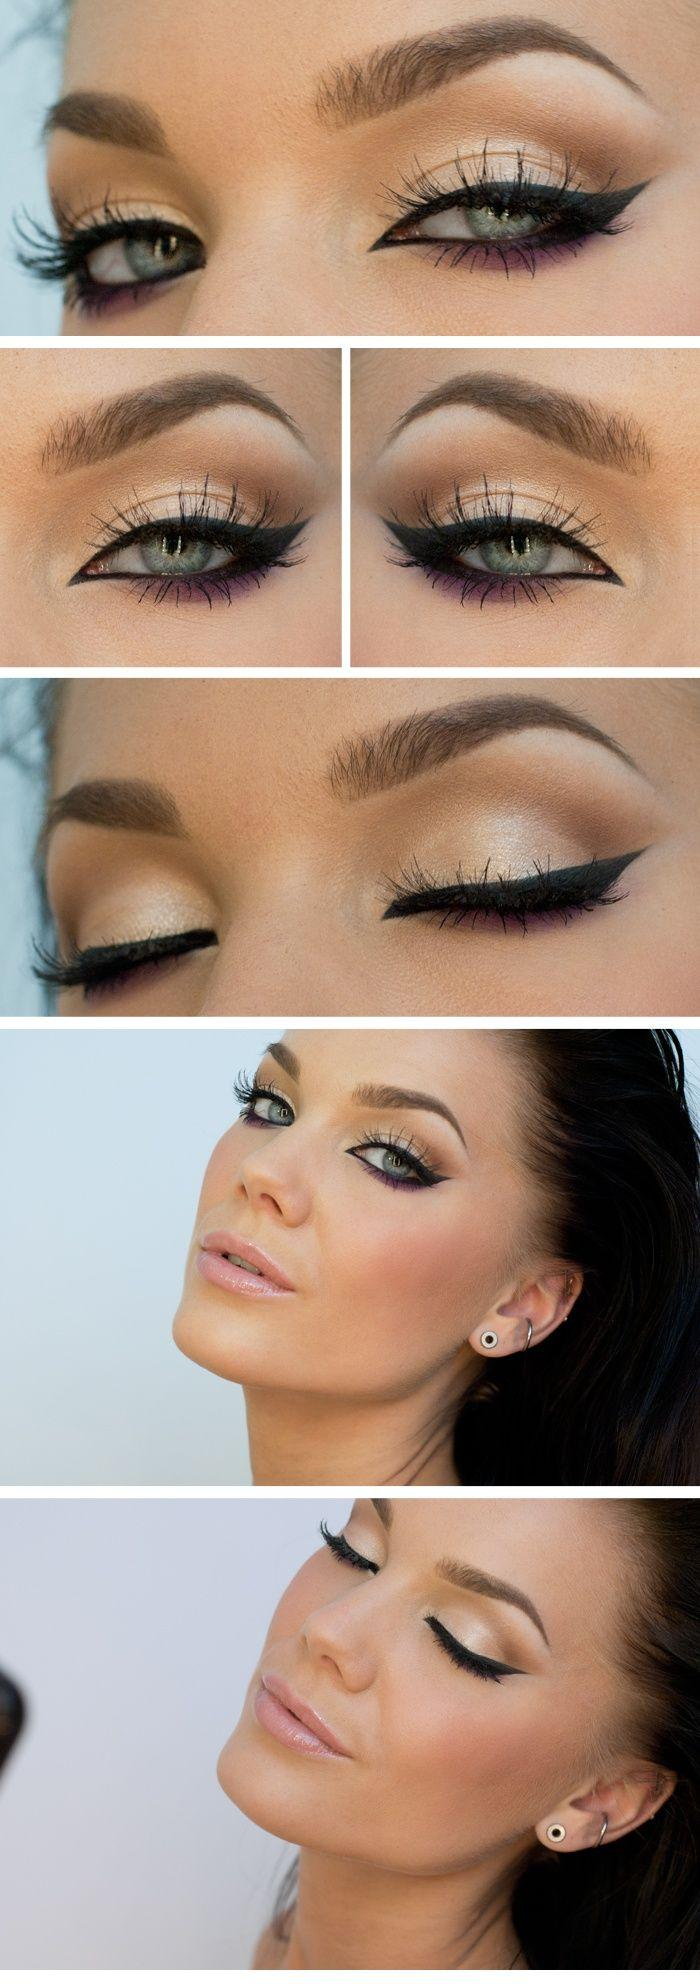 How To Apply Bridal Makeup Like A Pro : Makeup - How To Apply Eyeliner Like A Pro #2502142 - Weddbook